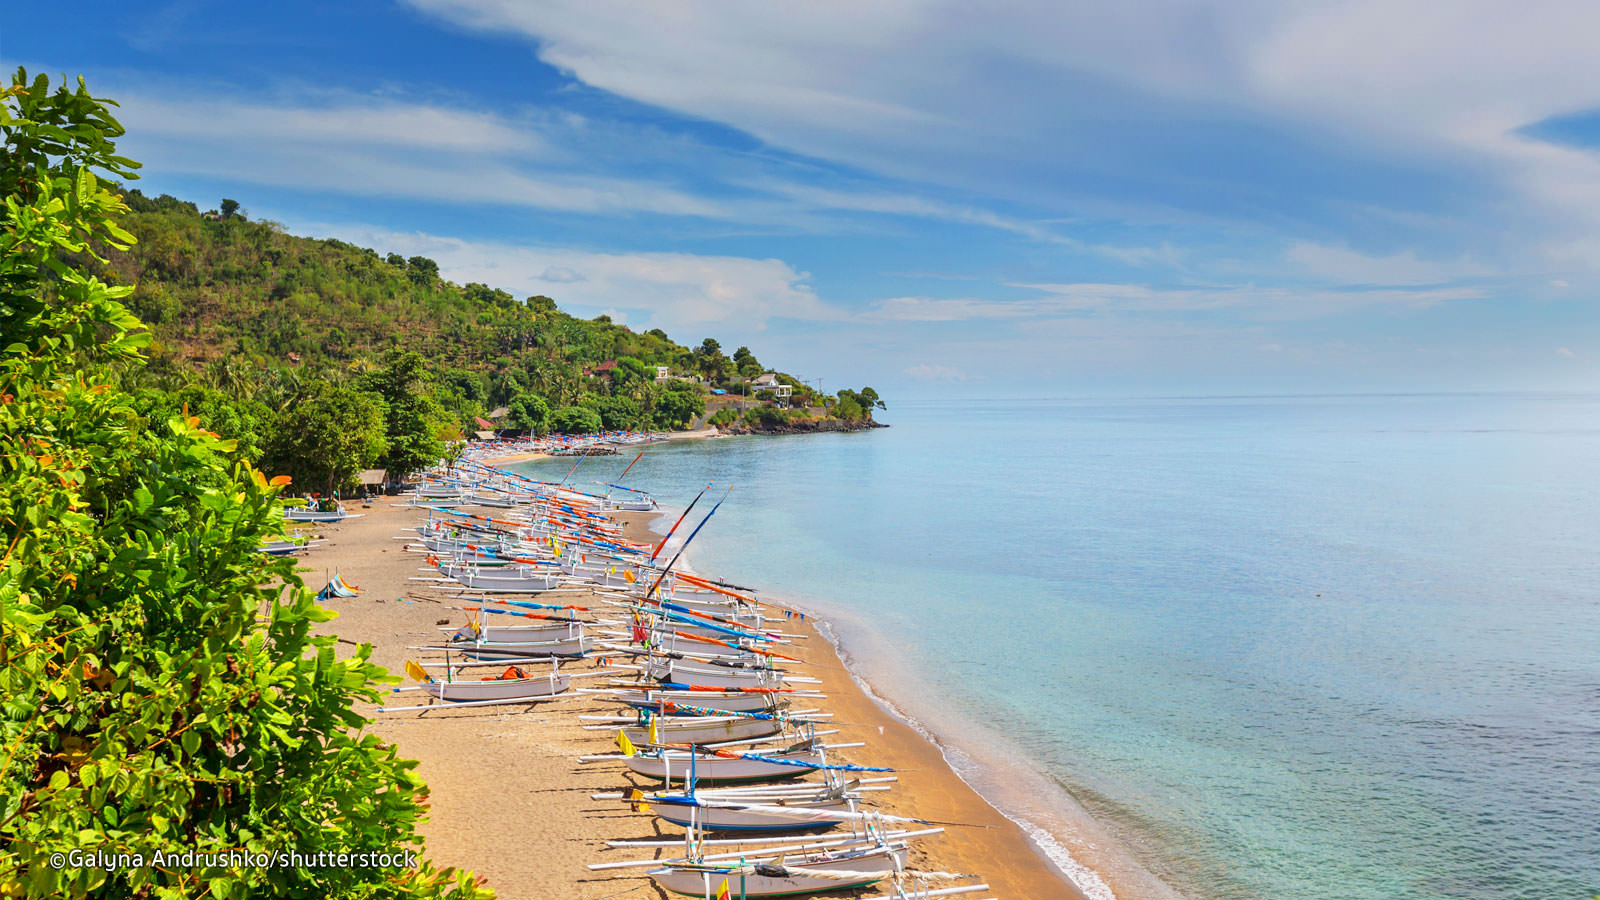 Pantai Lebih Coast Road to Kusamba, All East Bali Attractions - Things to See and Do in East Bali